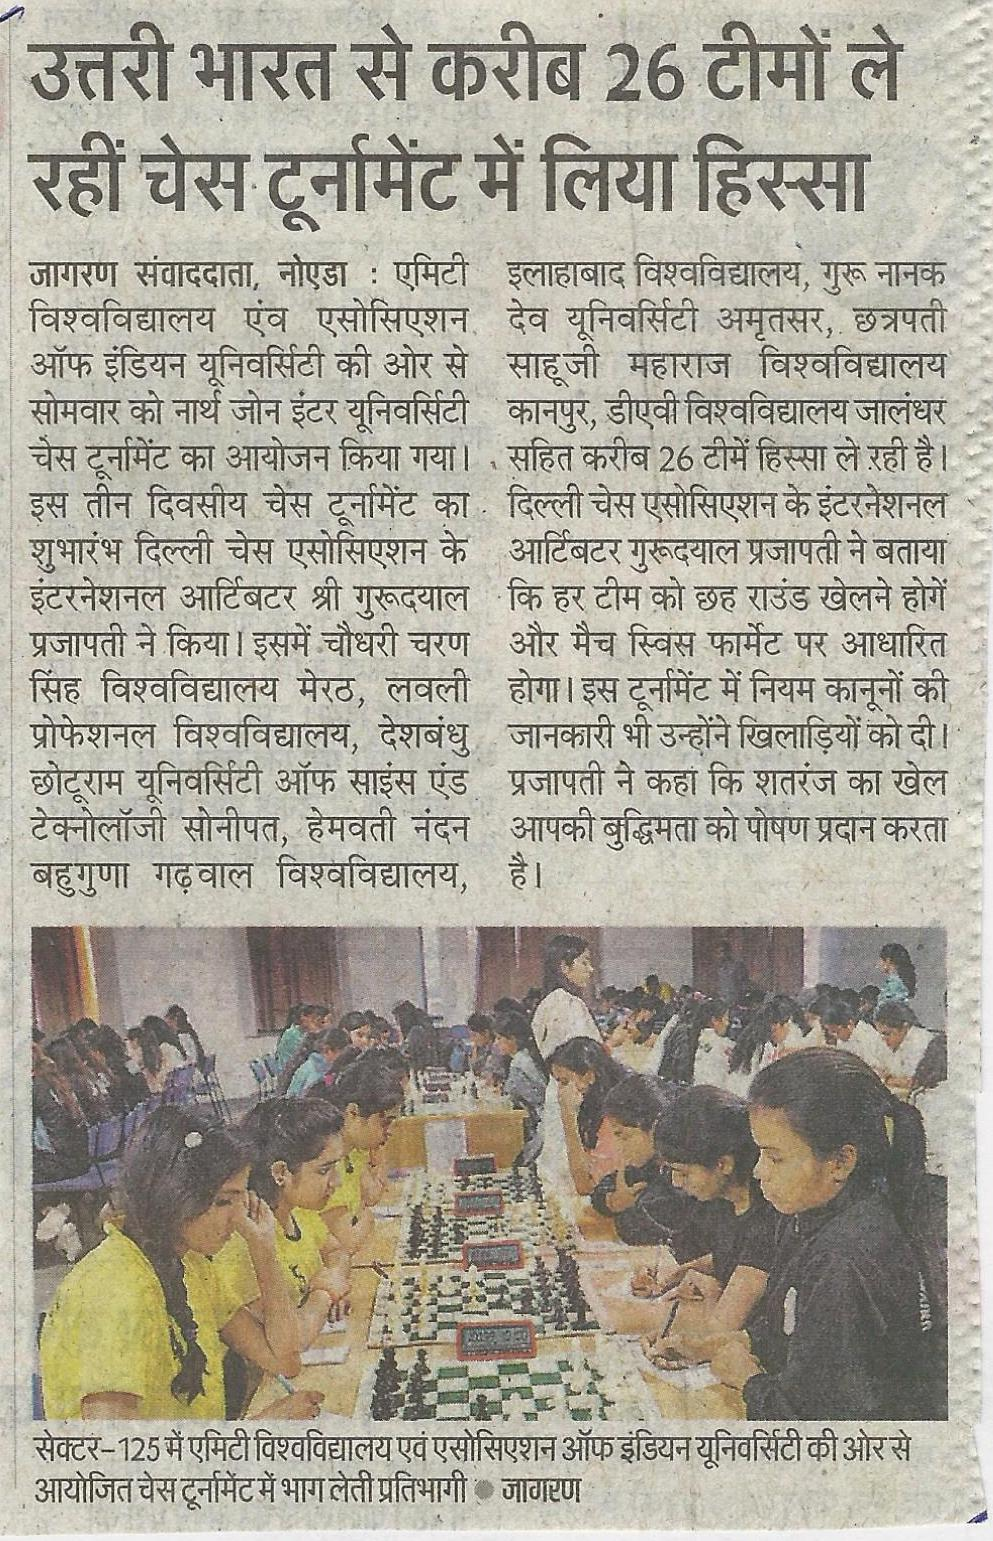 North Zone Inter University Chess (women) Tournament commences at Amity - Amity Events